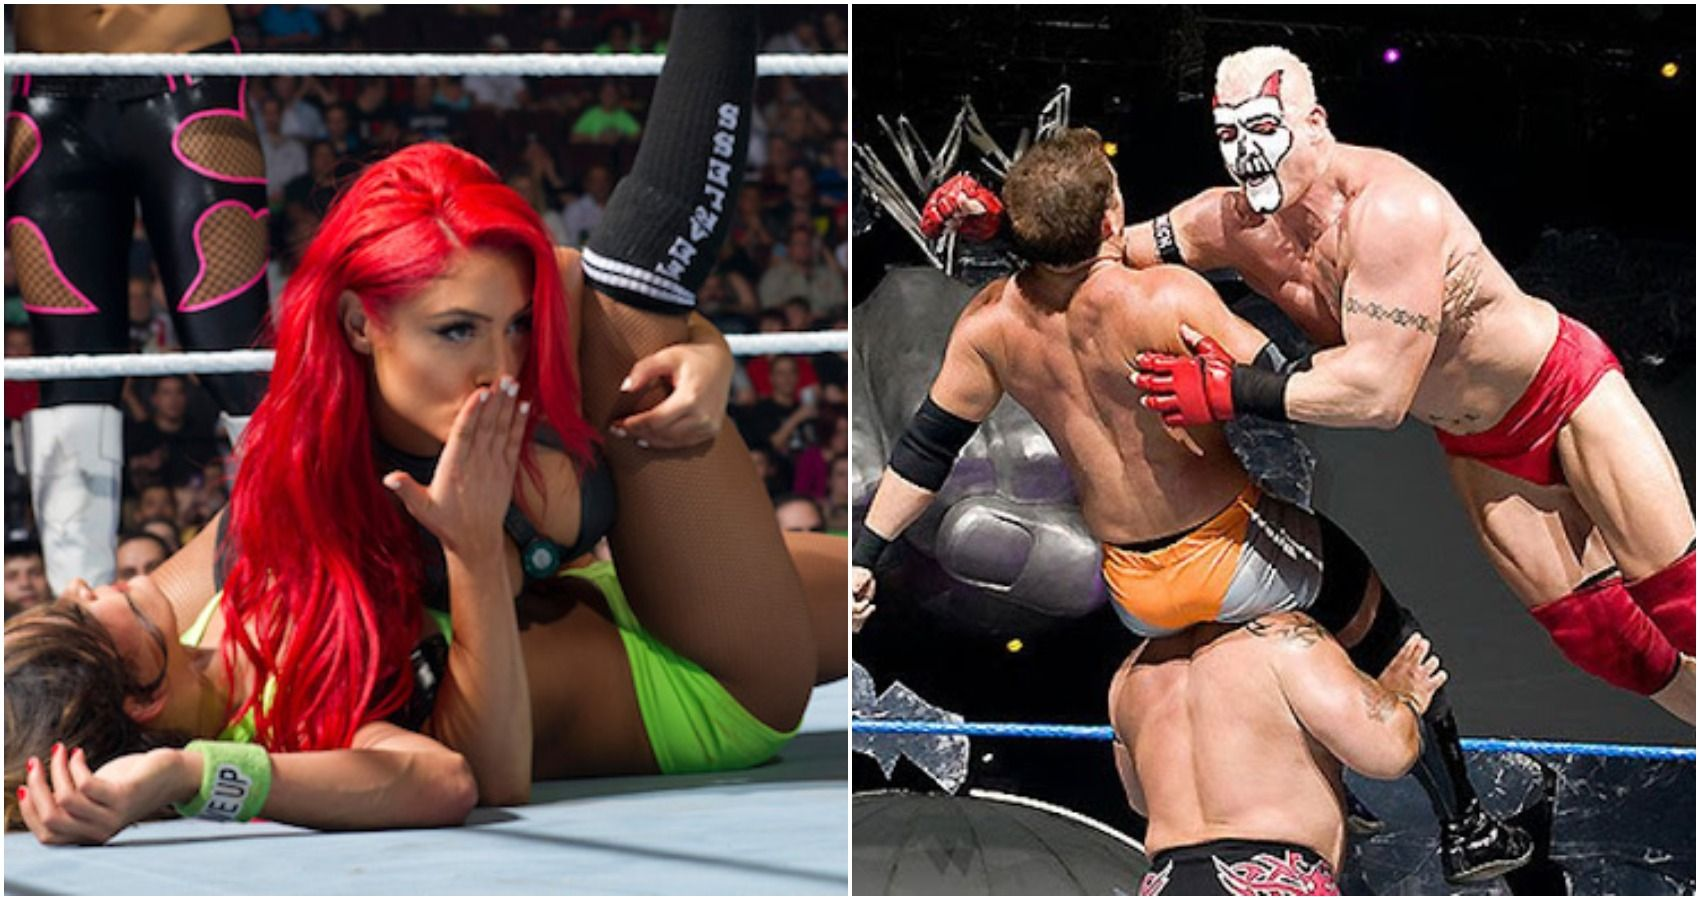 10 Wrestlers Hired For Their Looks Who Never Really Improved